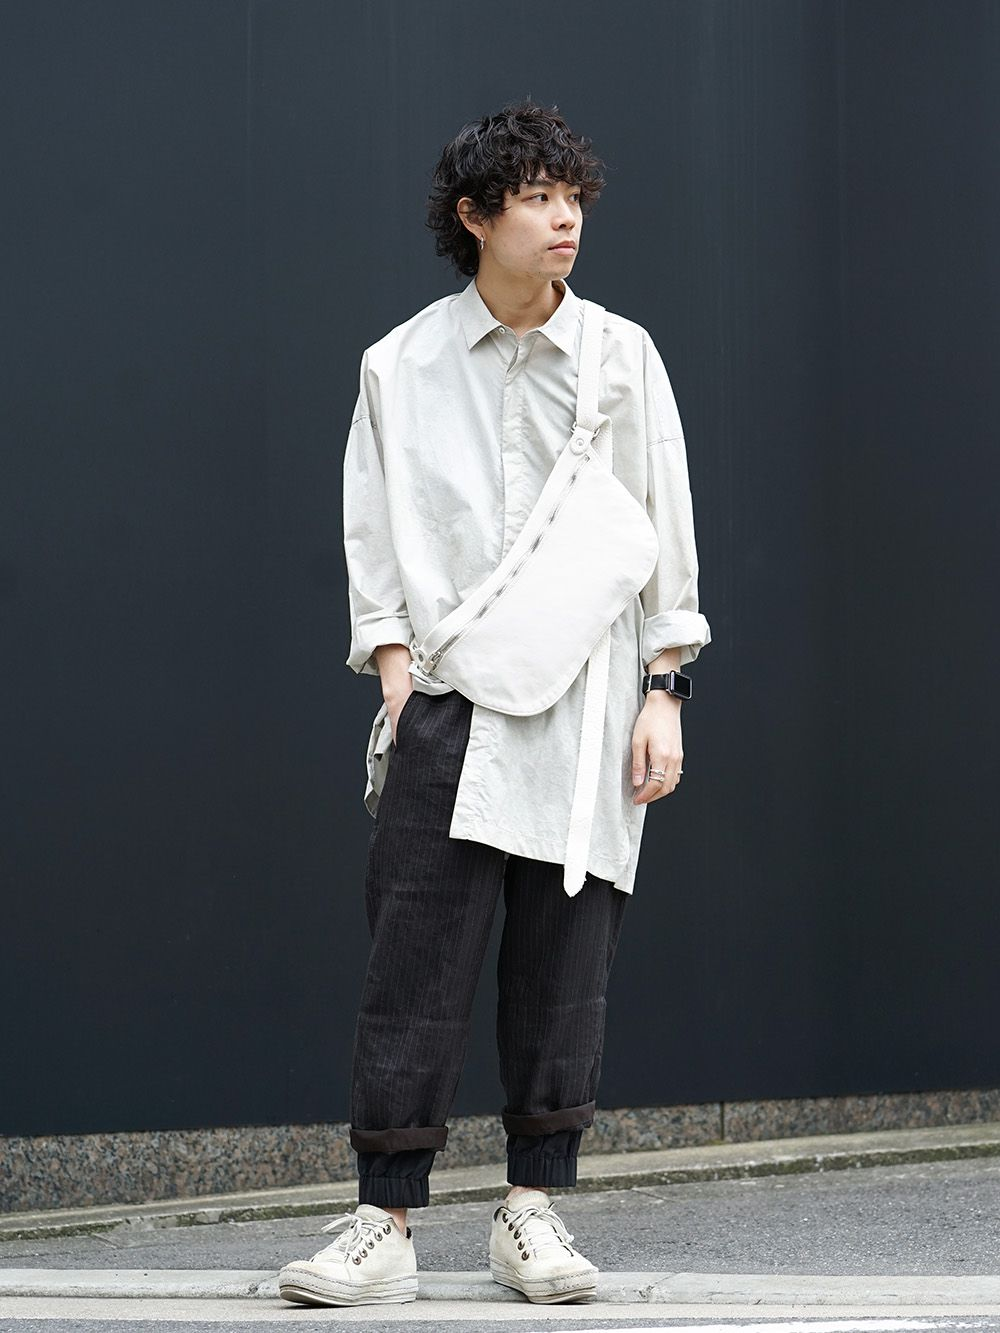 ZIGGY CHEN Relaxed Atmosphere Style - 1-001